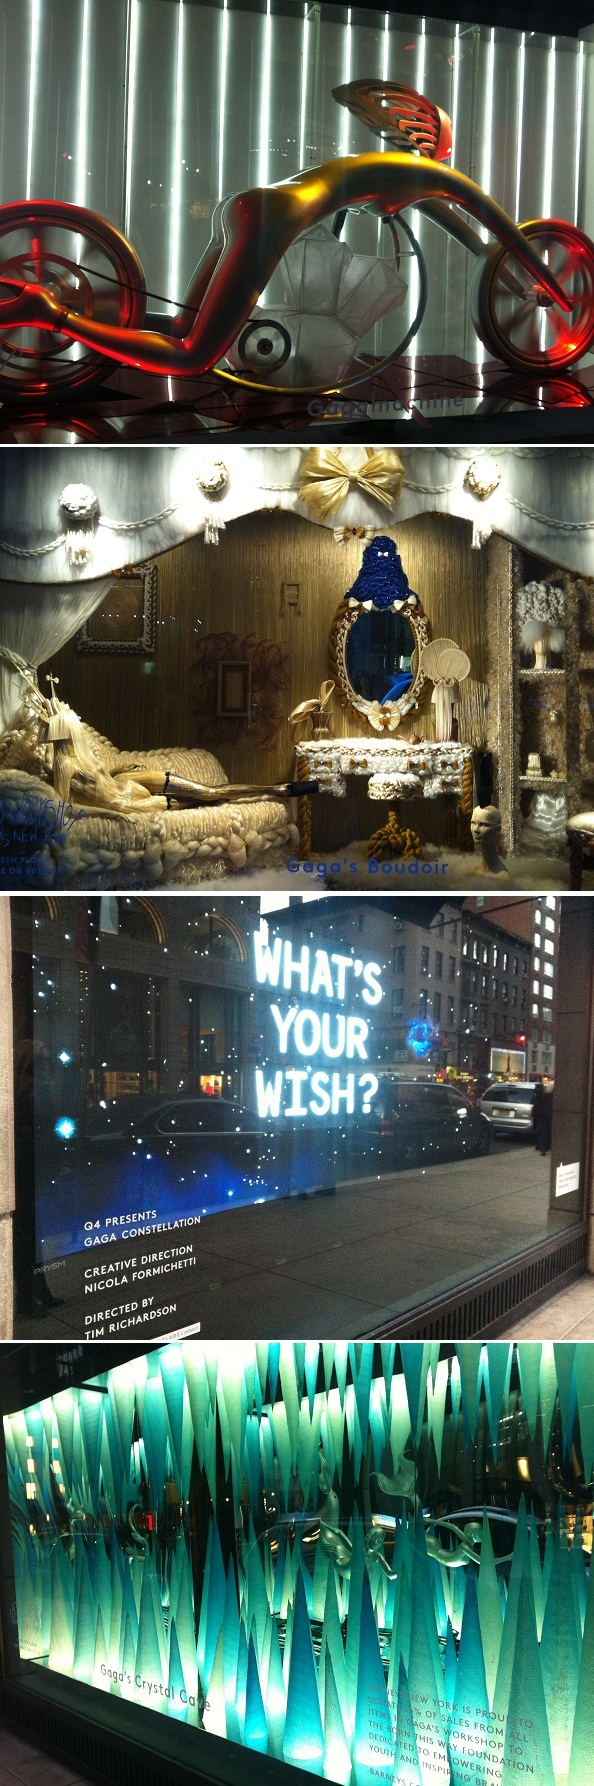 2011-12-28-2_Gagas_Workshop_Barneys_New_York_Lady_Gaga_Store_windows.jpg